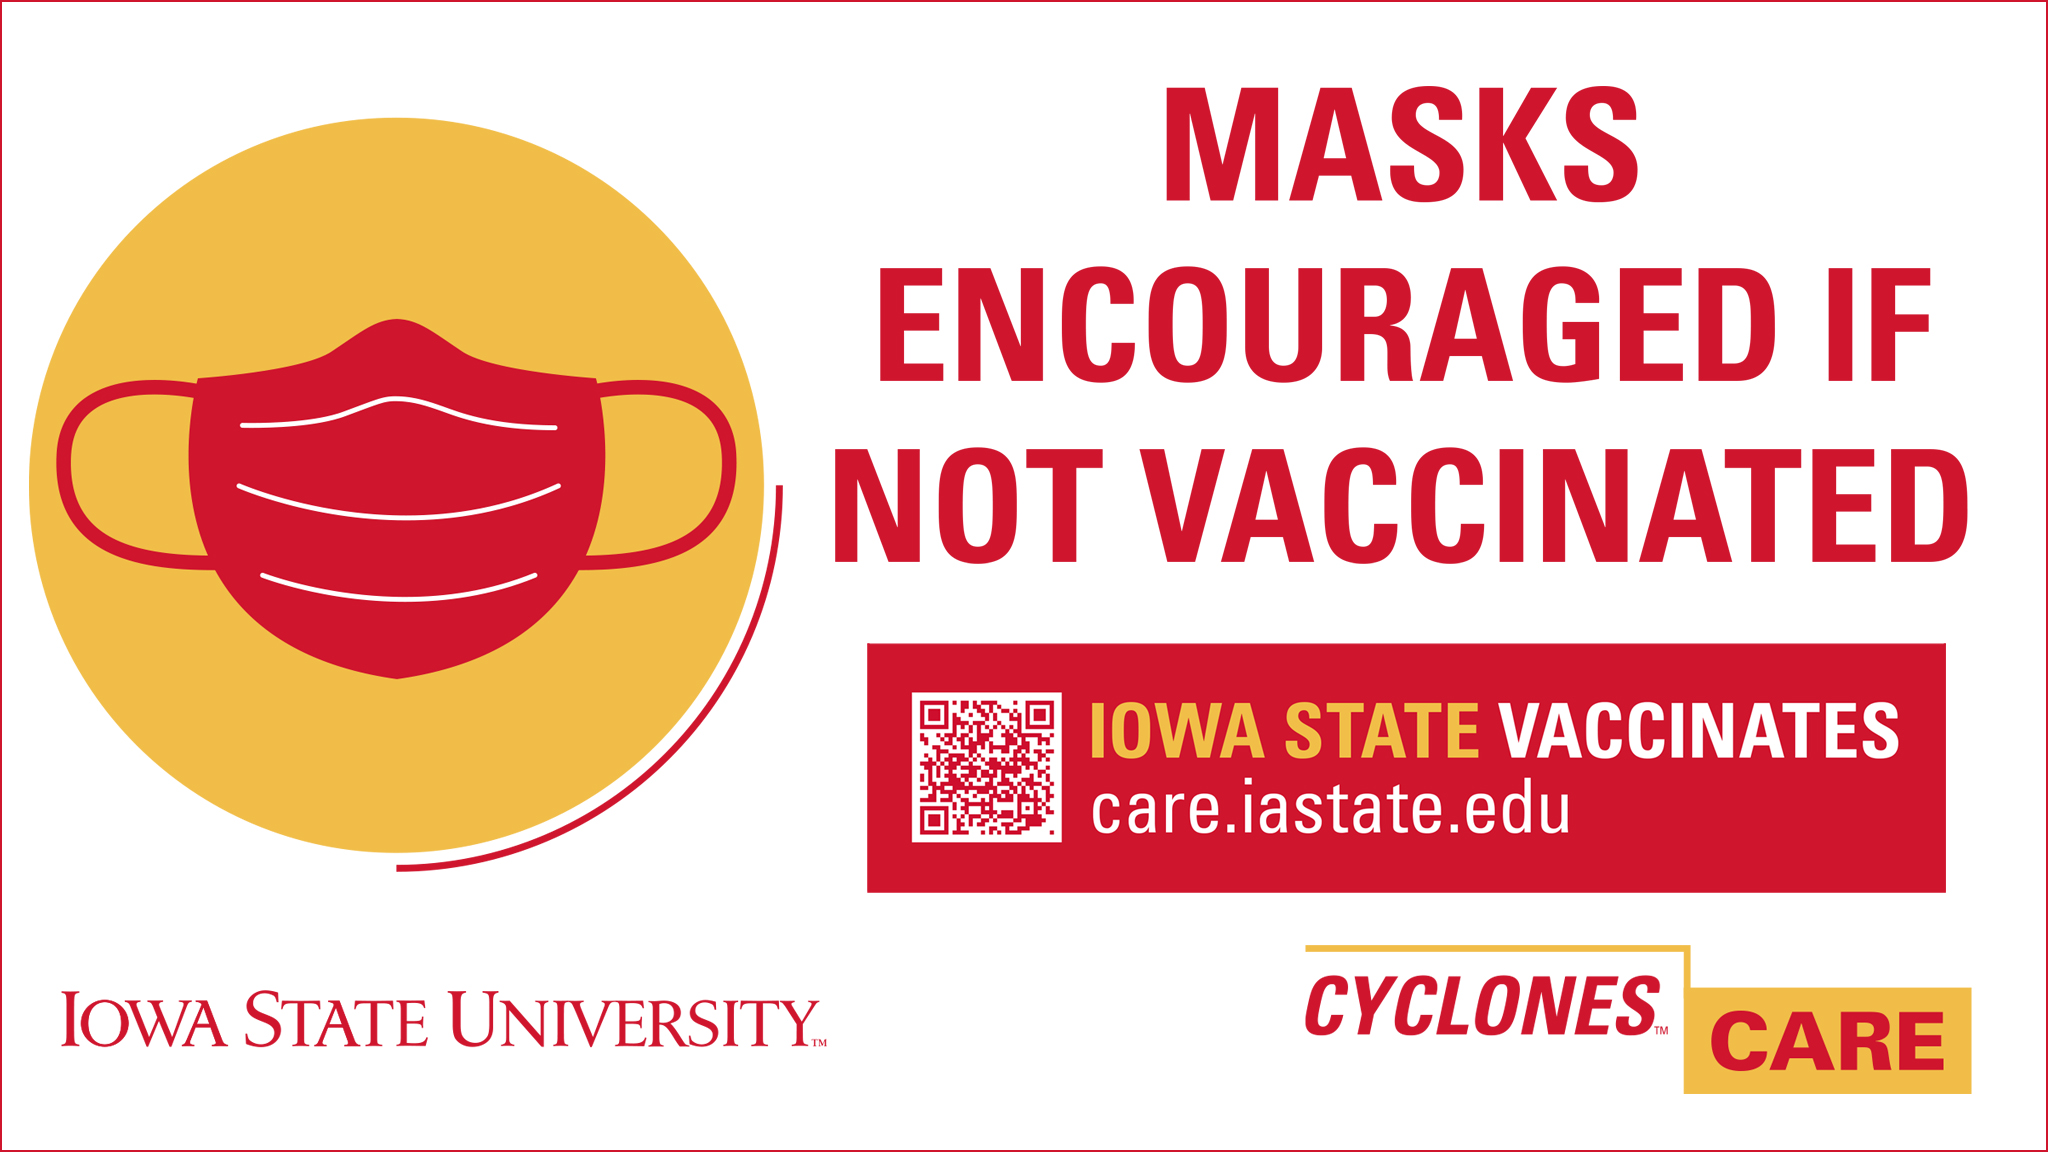 Masks encouraged if not vaccinated